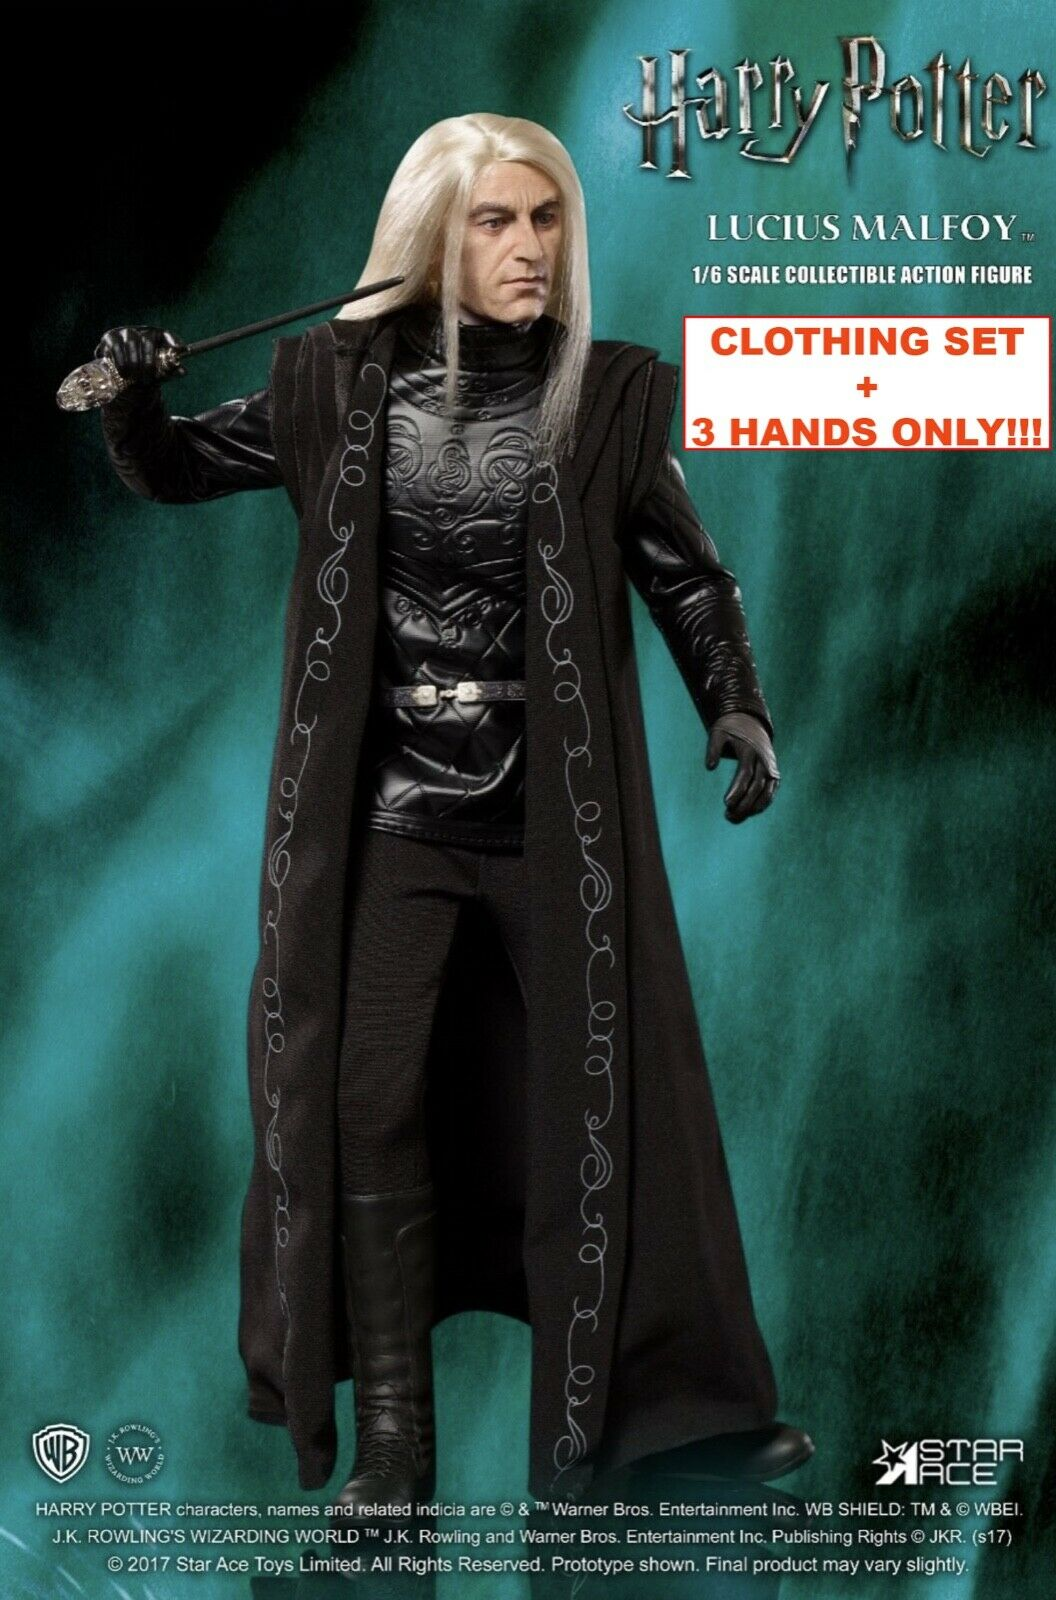 1 6 Scale STAR ACE (Harry Potter) Lucius Malfoy - CLOTHING SET + HANDS (3X)